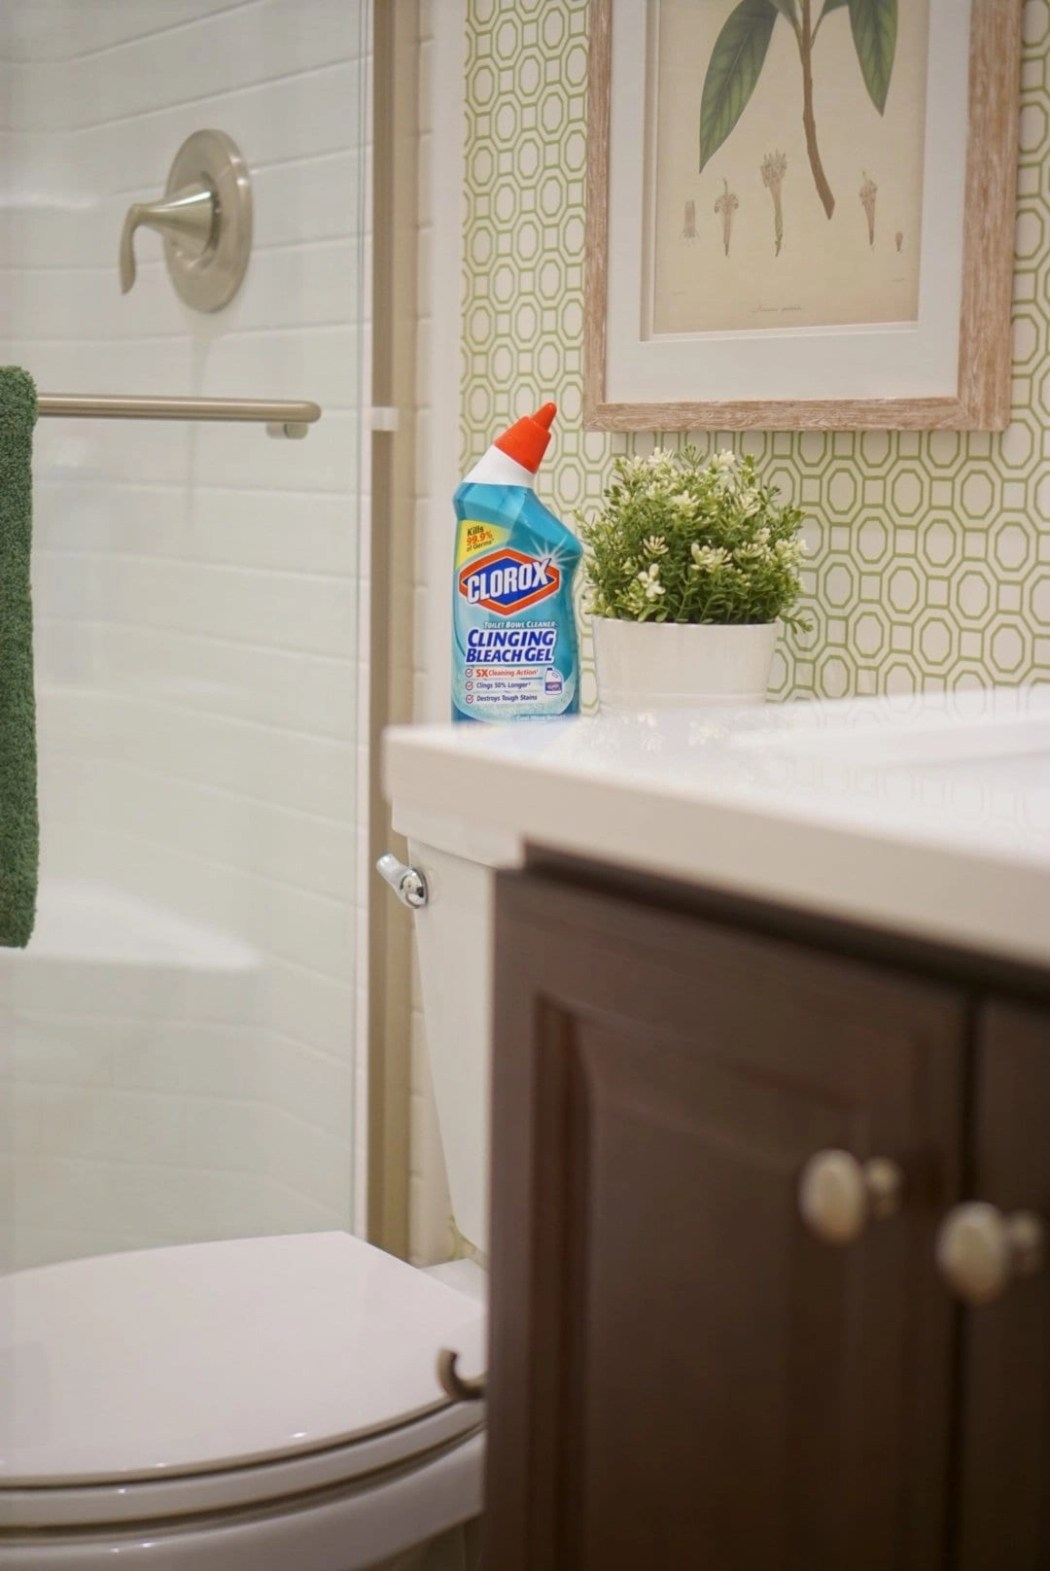 Clorox Toilet Bowl Cleaner